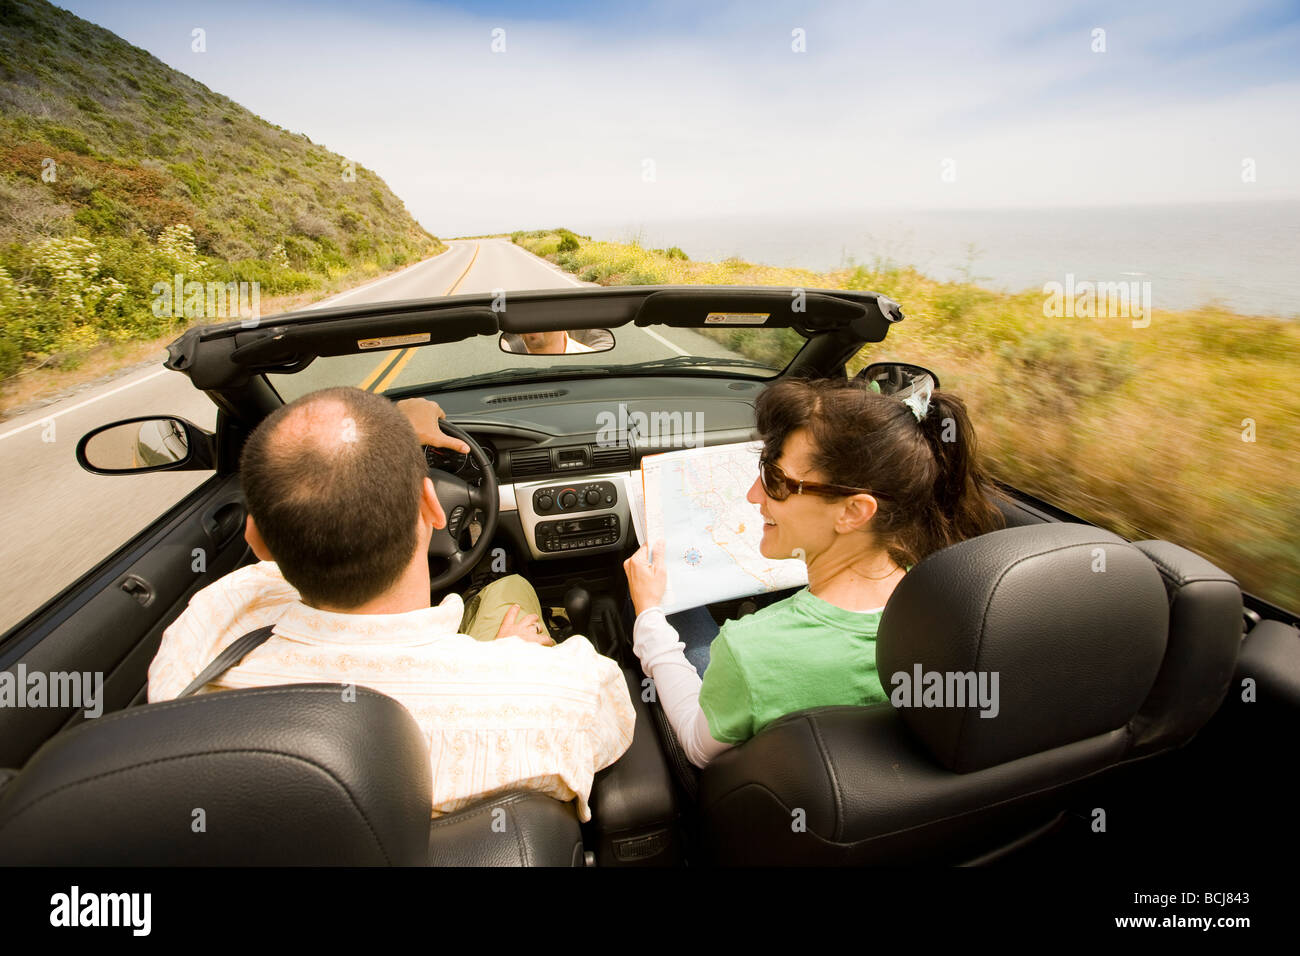 Road Map Usa Stock Photos  Road Map Usa Stock Images Alamy - Usa road map california